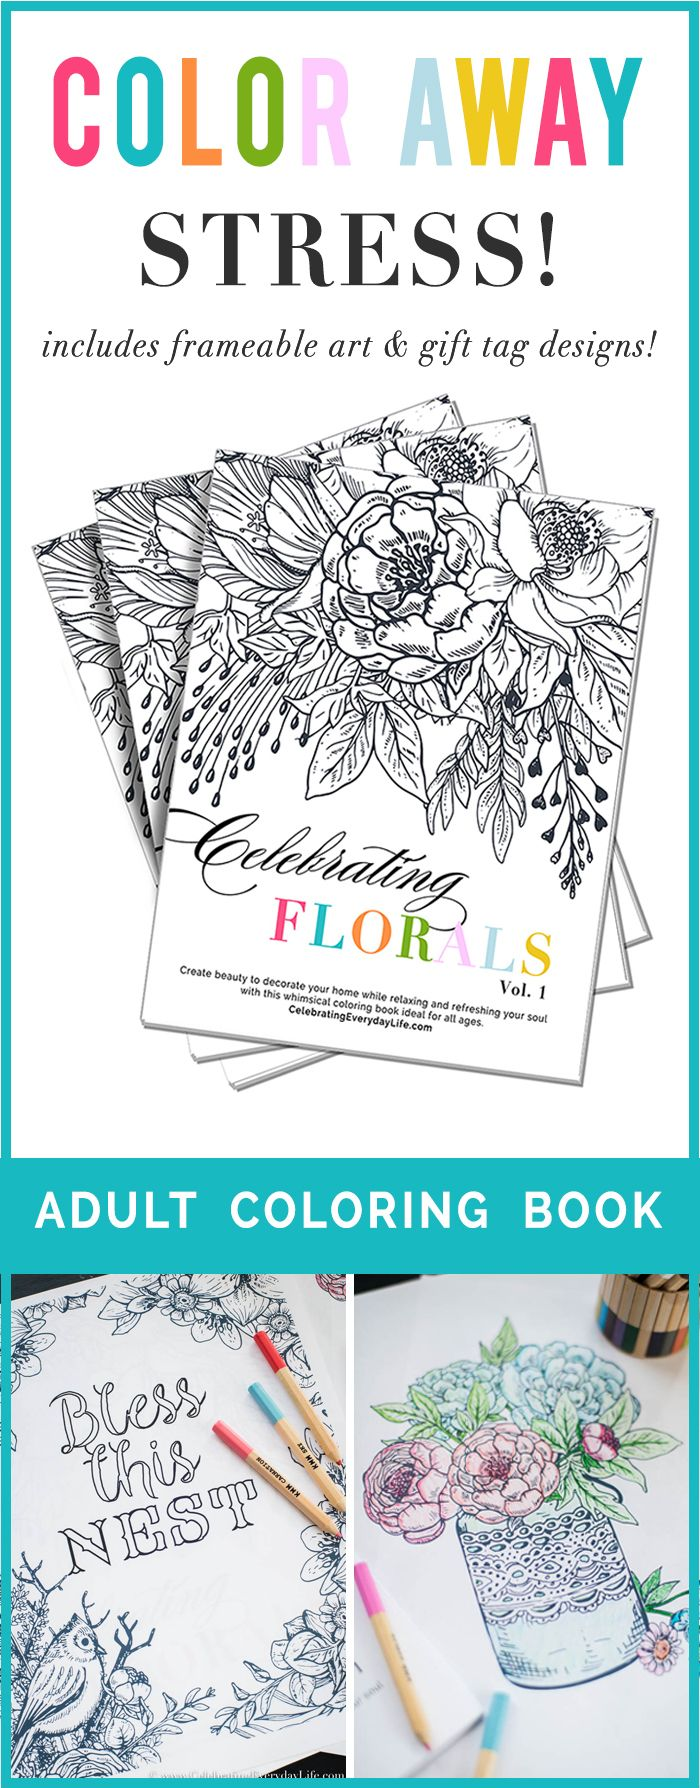 Farmhouse Style Adult Coloring Pages To Help You Be Creative And Calm Can Honestly